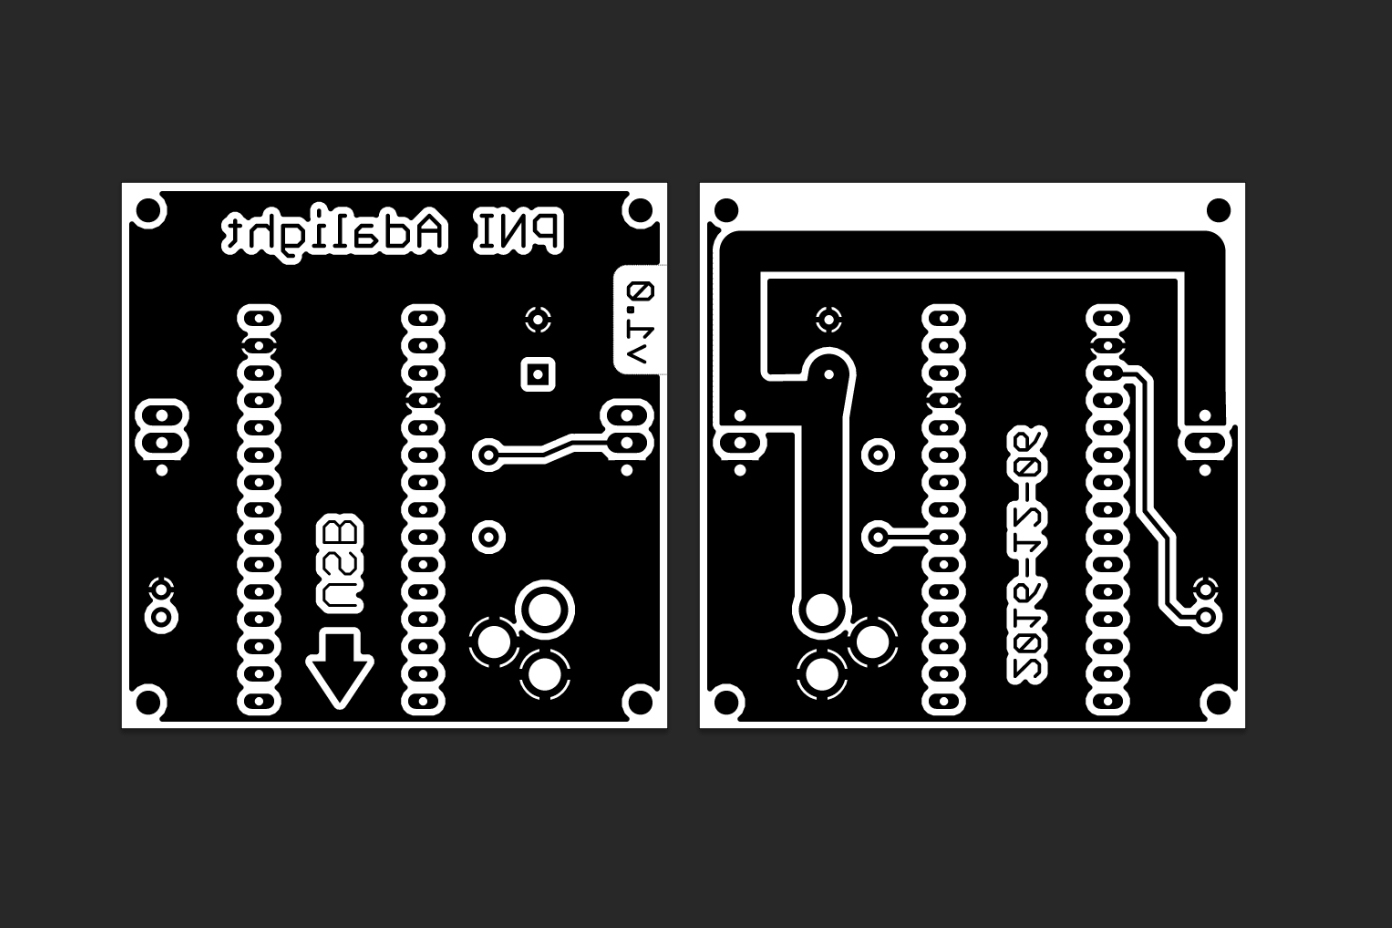 Making A Custom Pcb And Case For Adalight Parts Not Included Etching Printed Circuit Boards At Home Copies Of The Black White Composites Were Arranged To Fit On Standard 85 X 11 Sheet Scale Then High Quality Glossy Paper